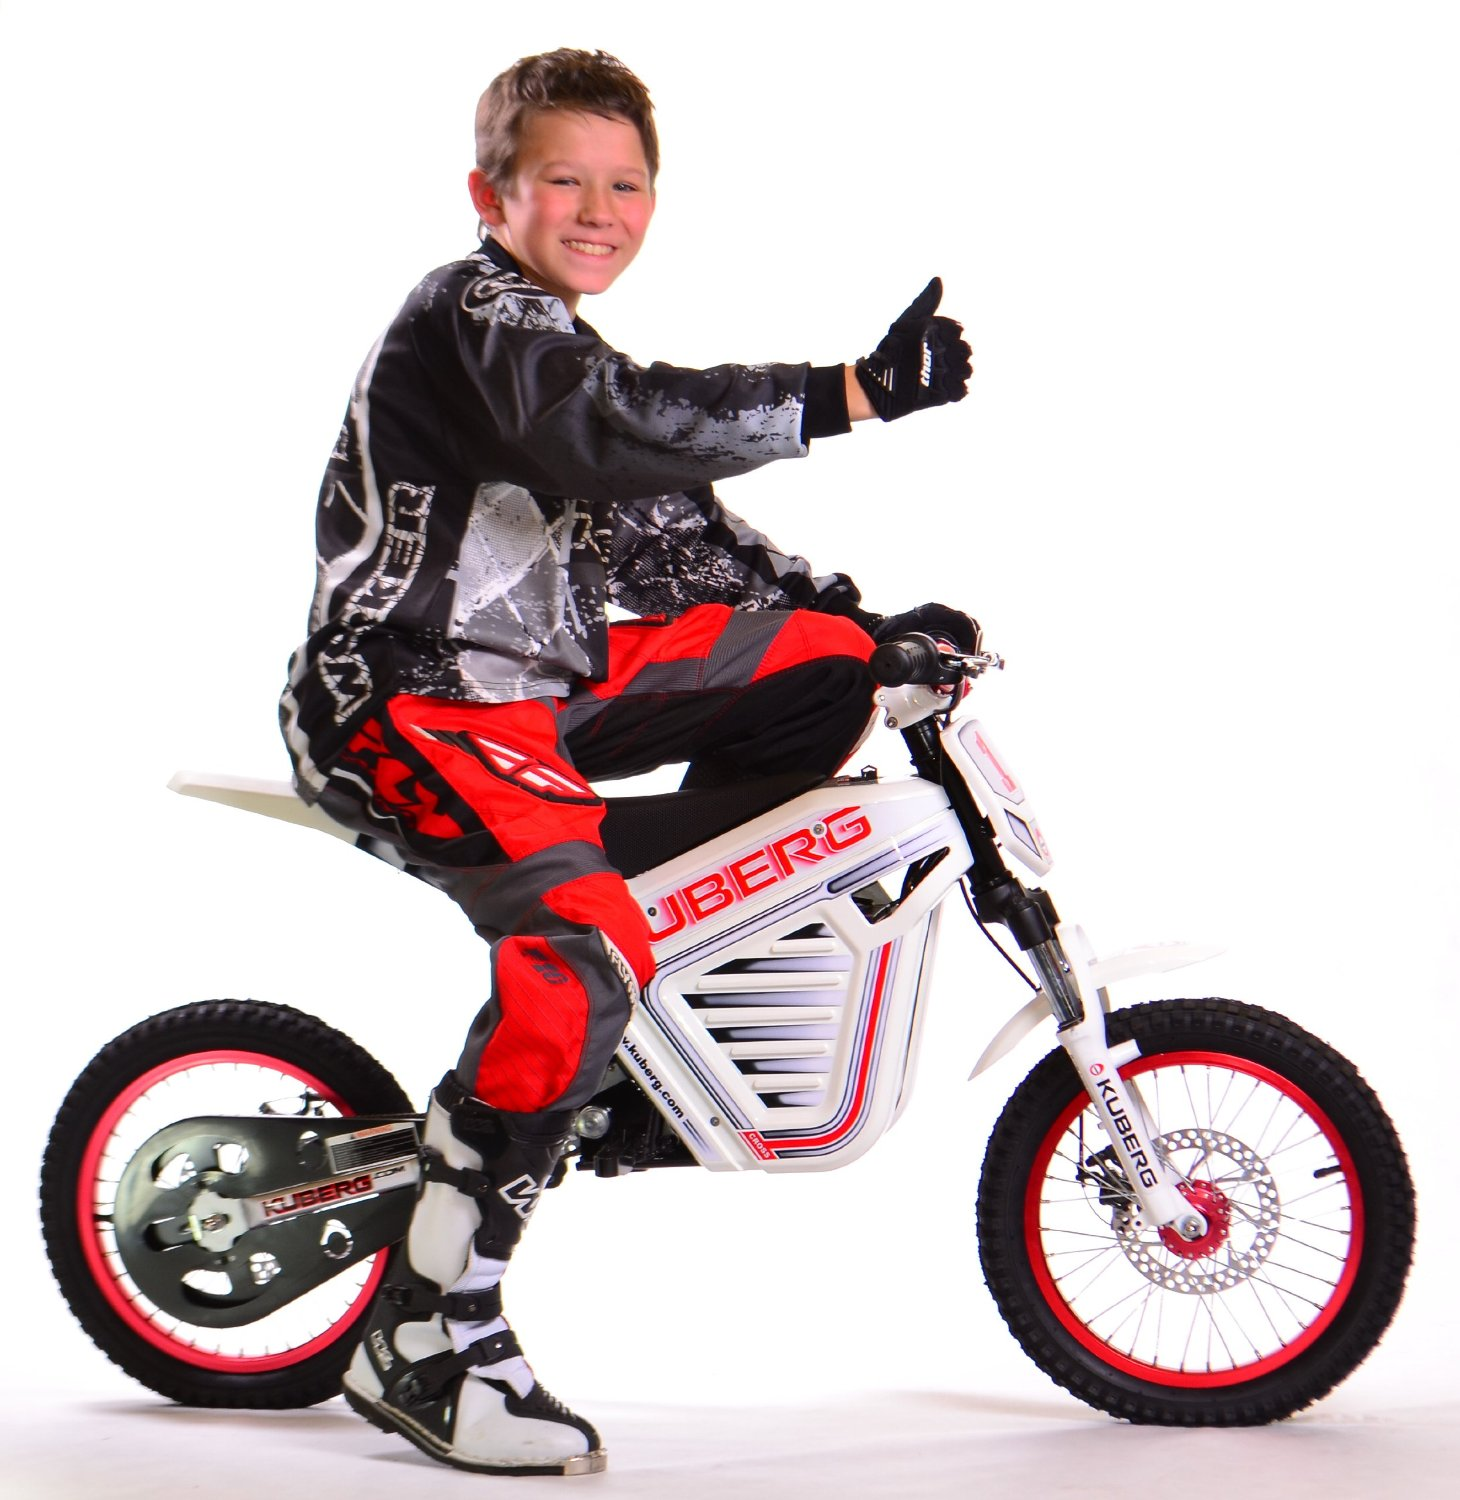 Motocross Kids Clothing & Accessories from CafePress are professionally printed and made of the best materials in a wide range of colors and sizes.